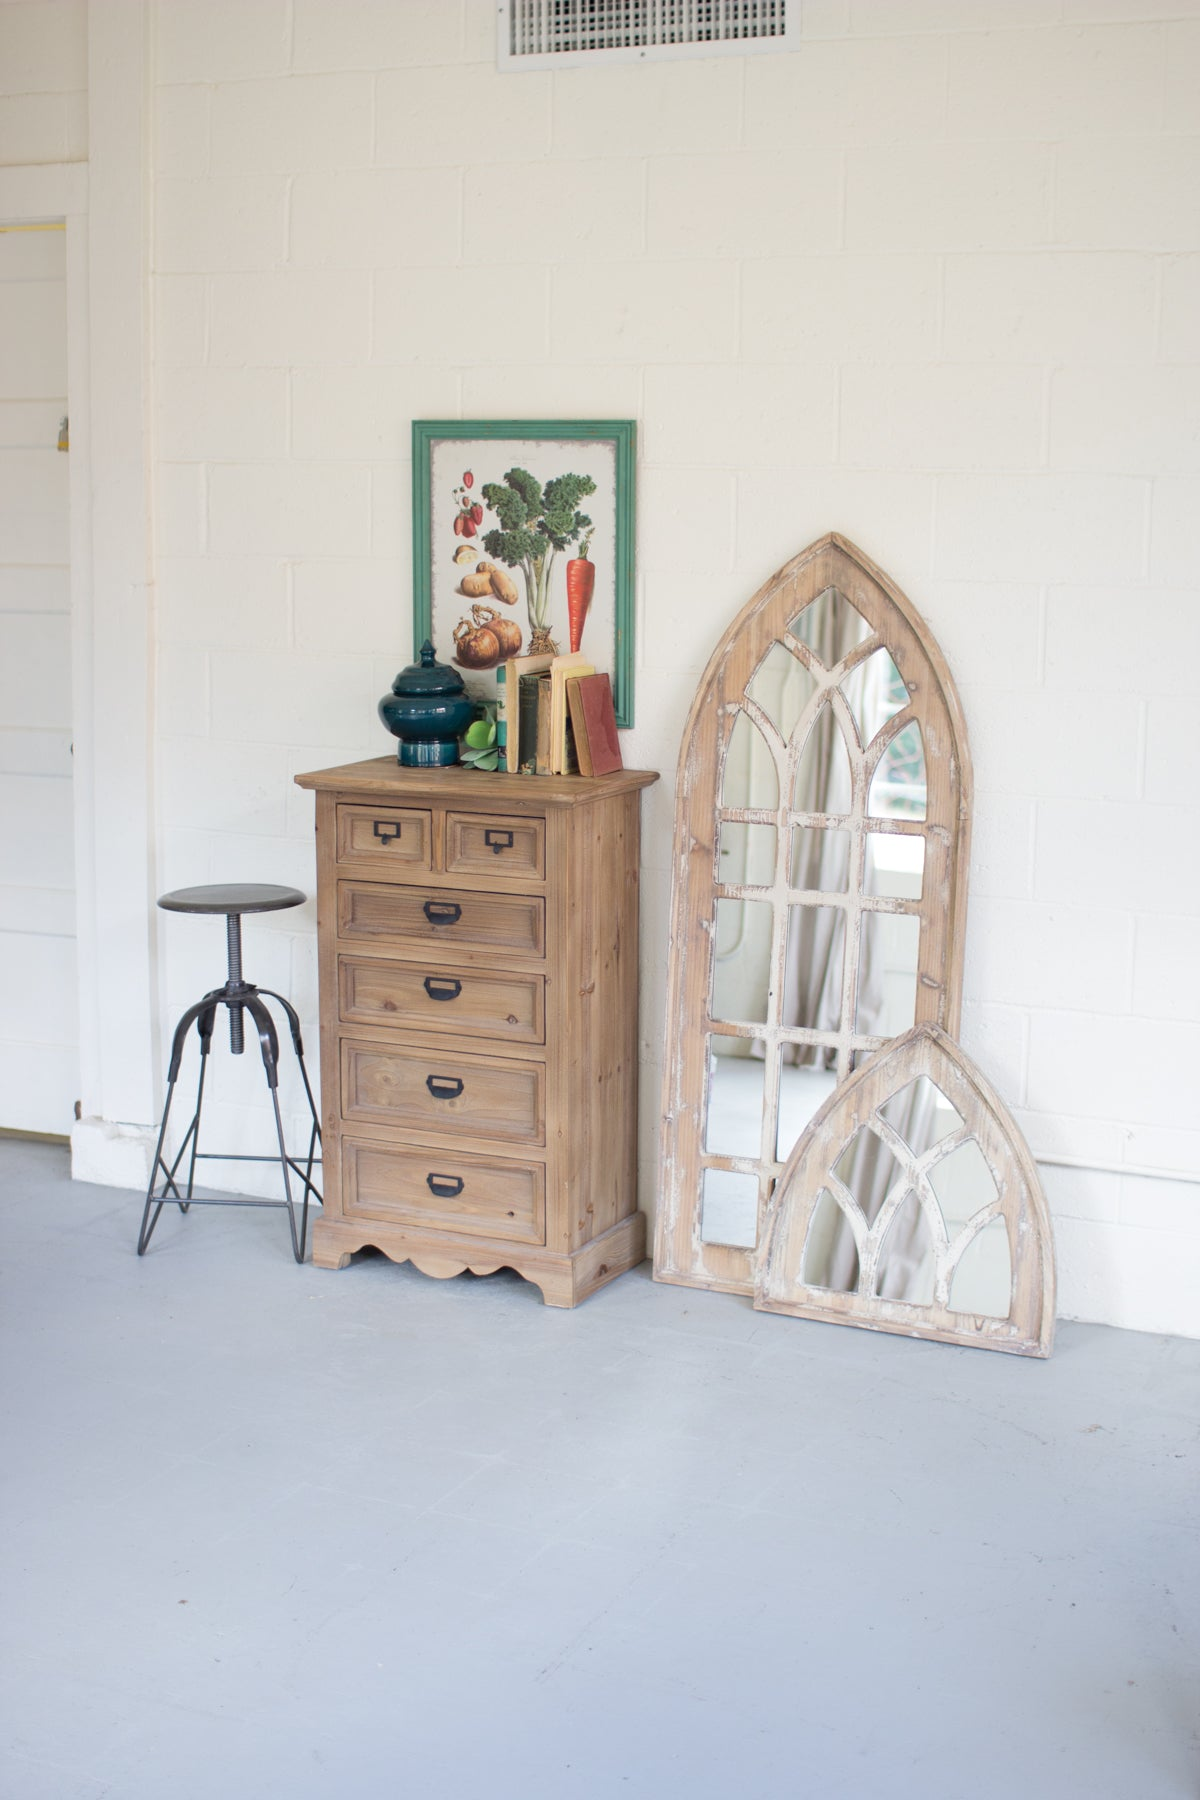 Rustic Arched Wood Mirror